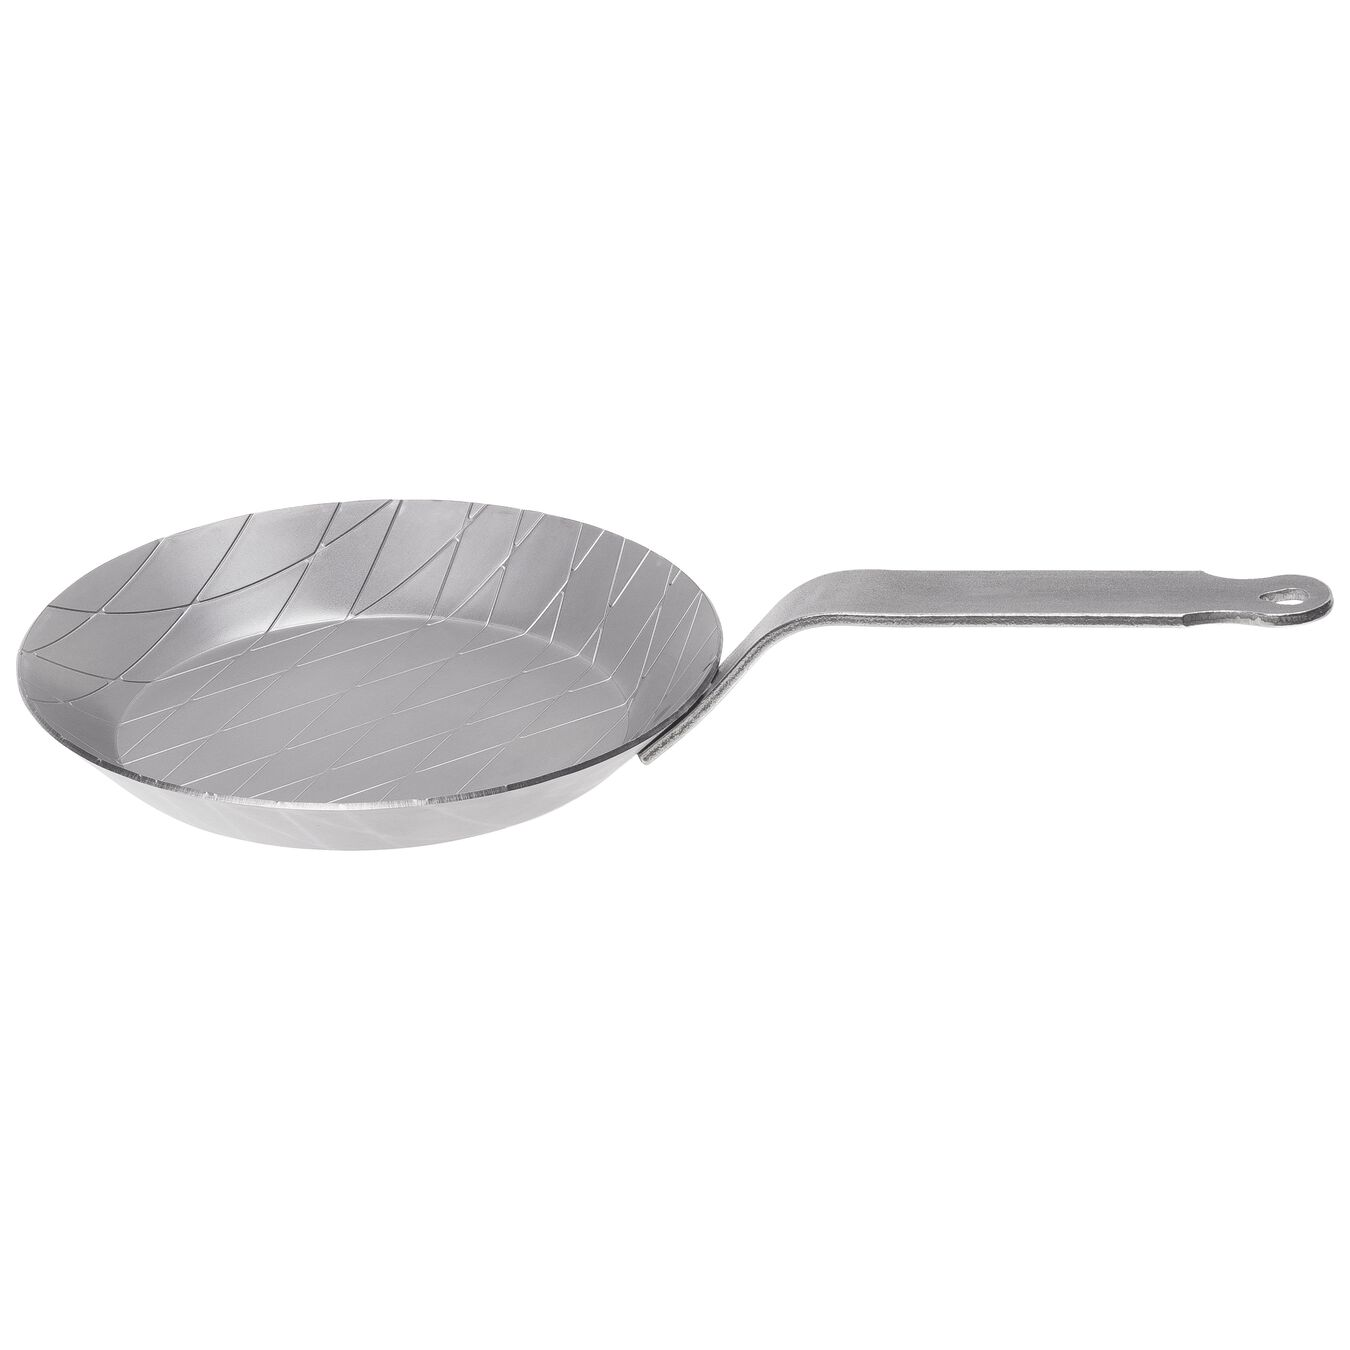 32 cm / 12.5 inch Carbon steel Frying pan,,large 1